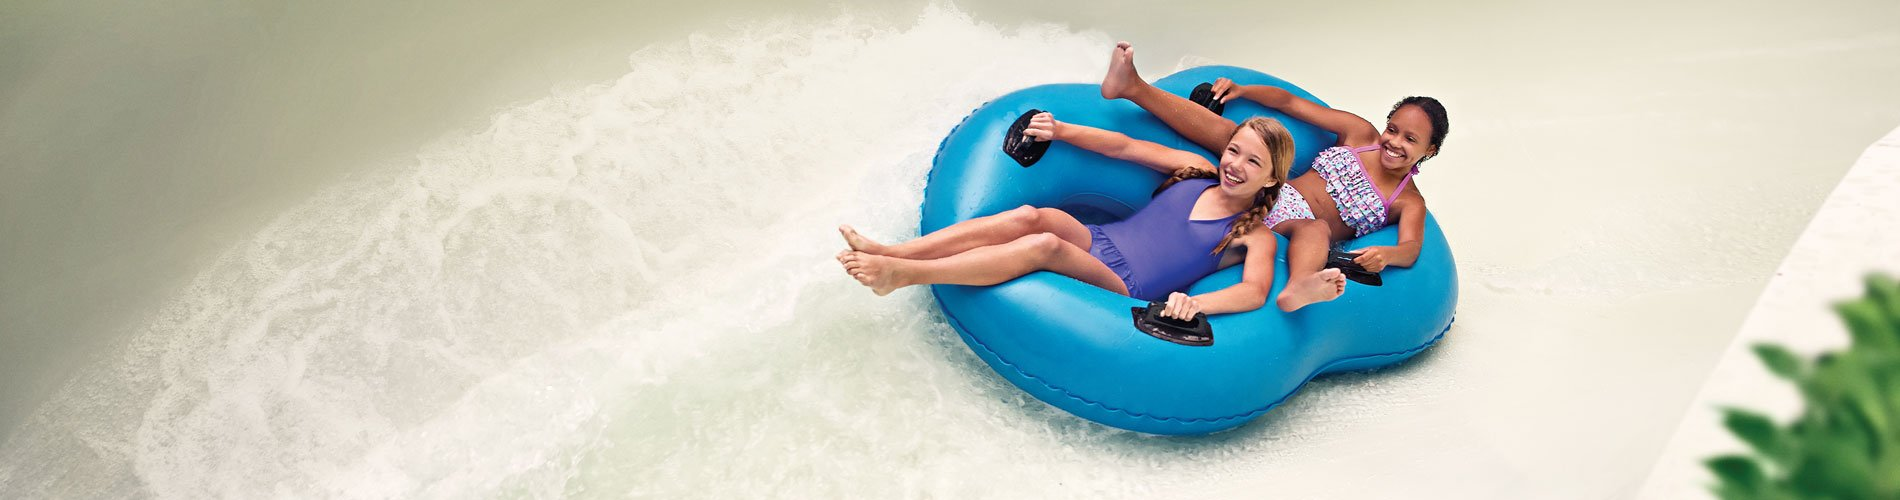 Wild Thang - thrilling flume ride at Water Country USA